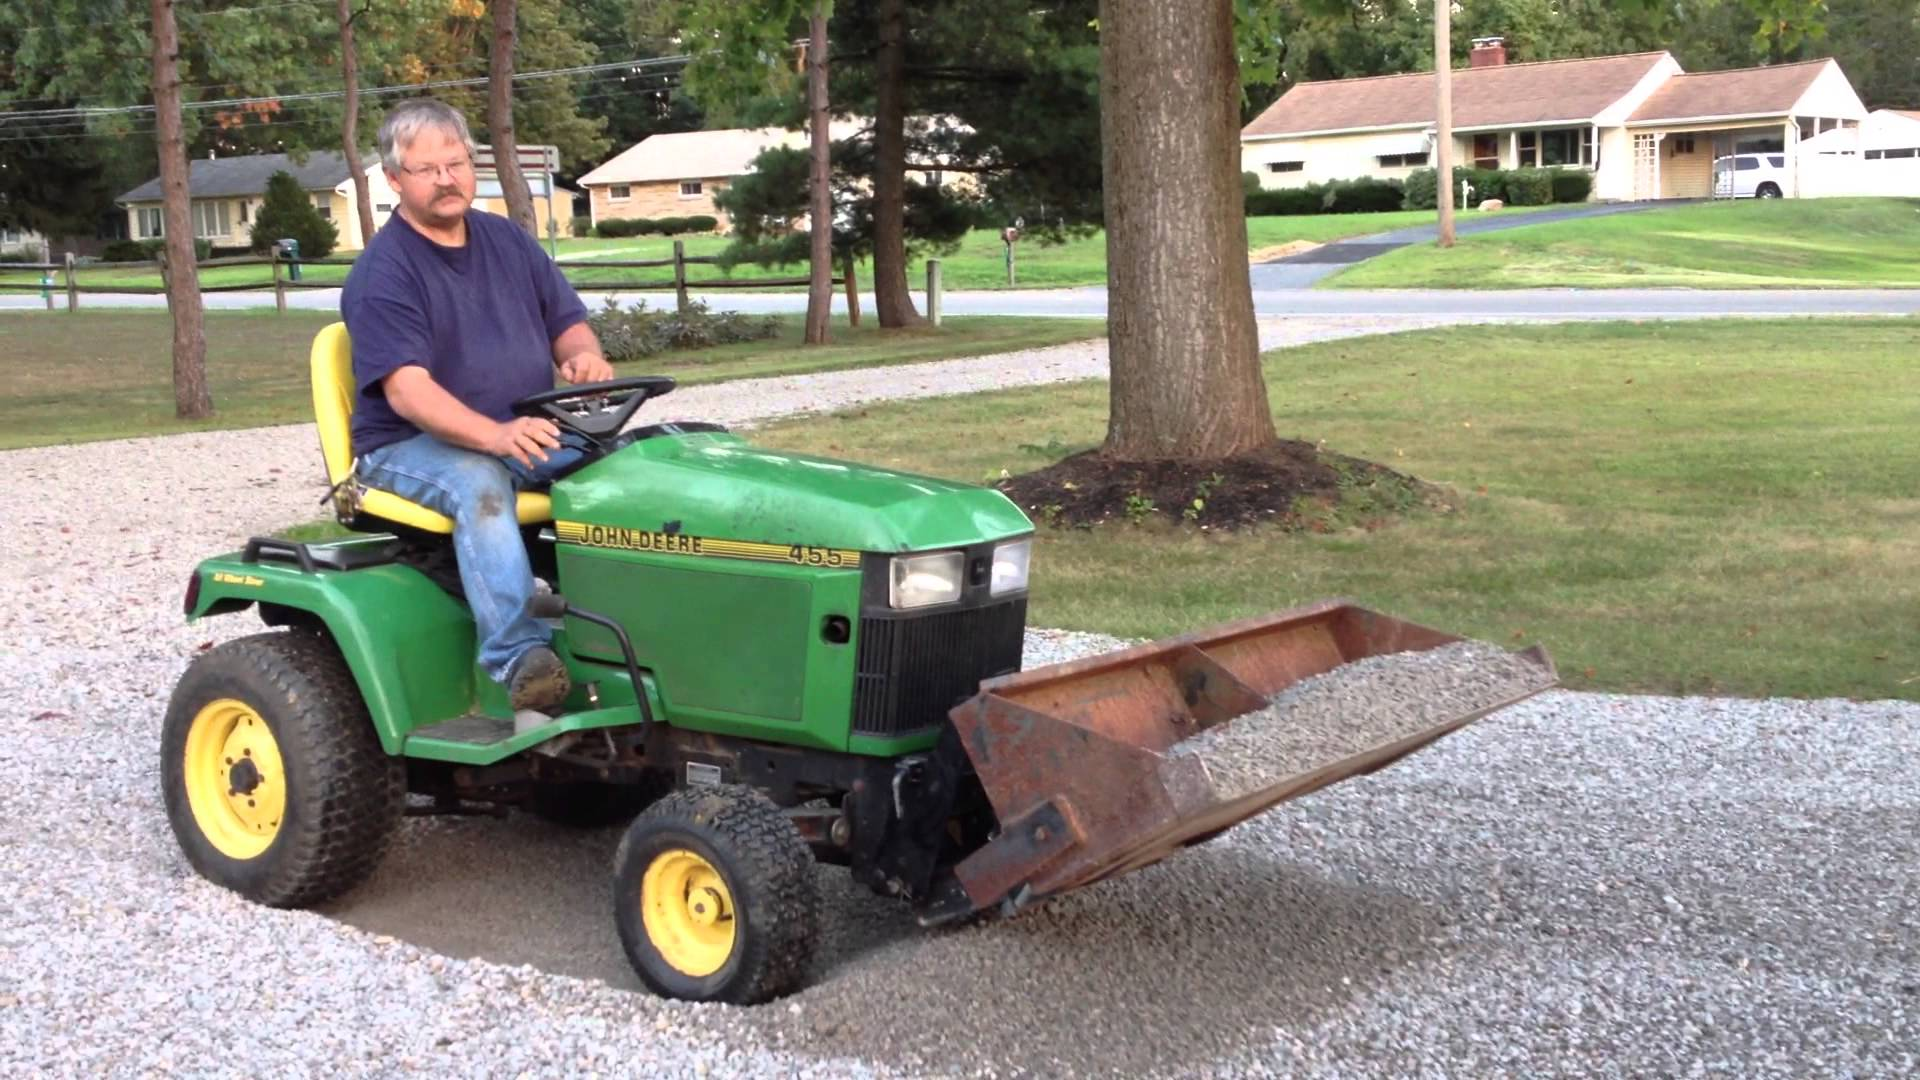 John Deere 455 with Johnny Loader - YouTube